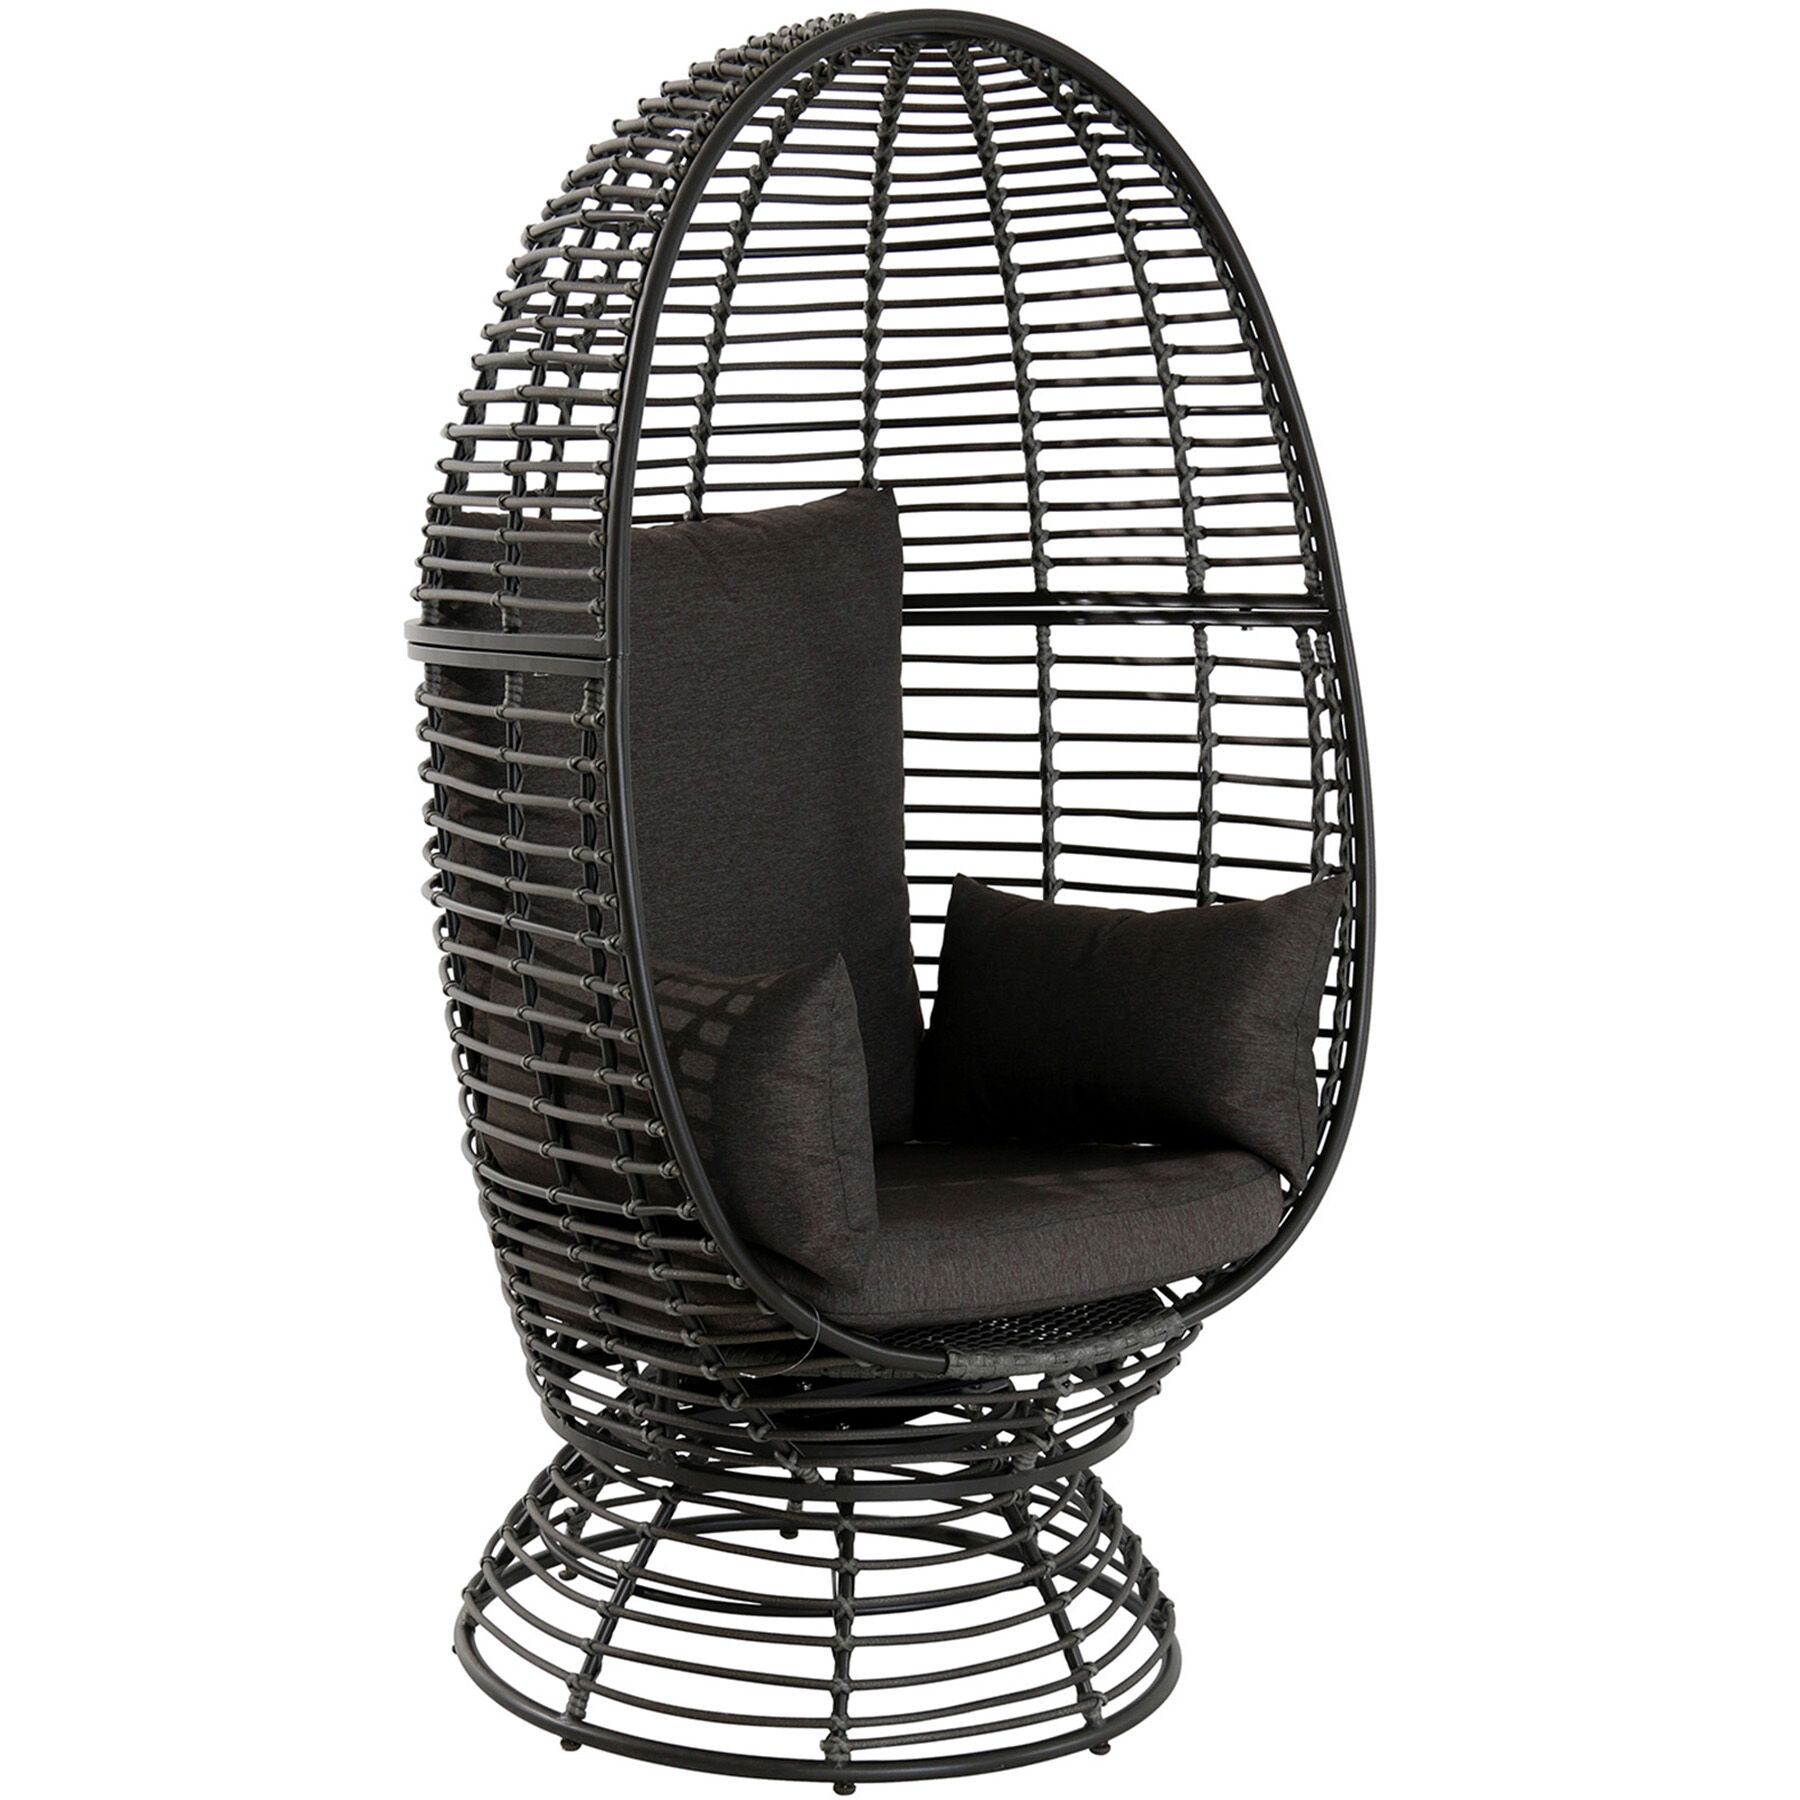 Egg Wicker Chair Foster Wicker Swivel Egg Chair Brown At Home